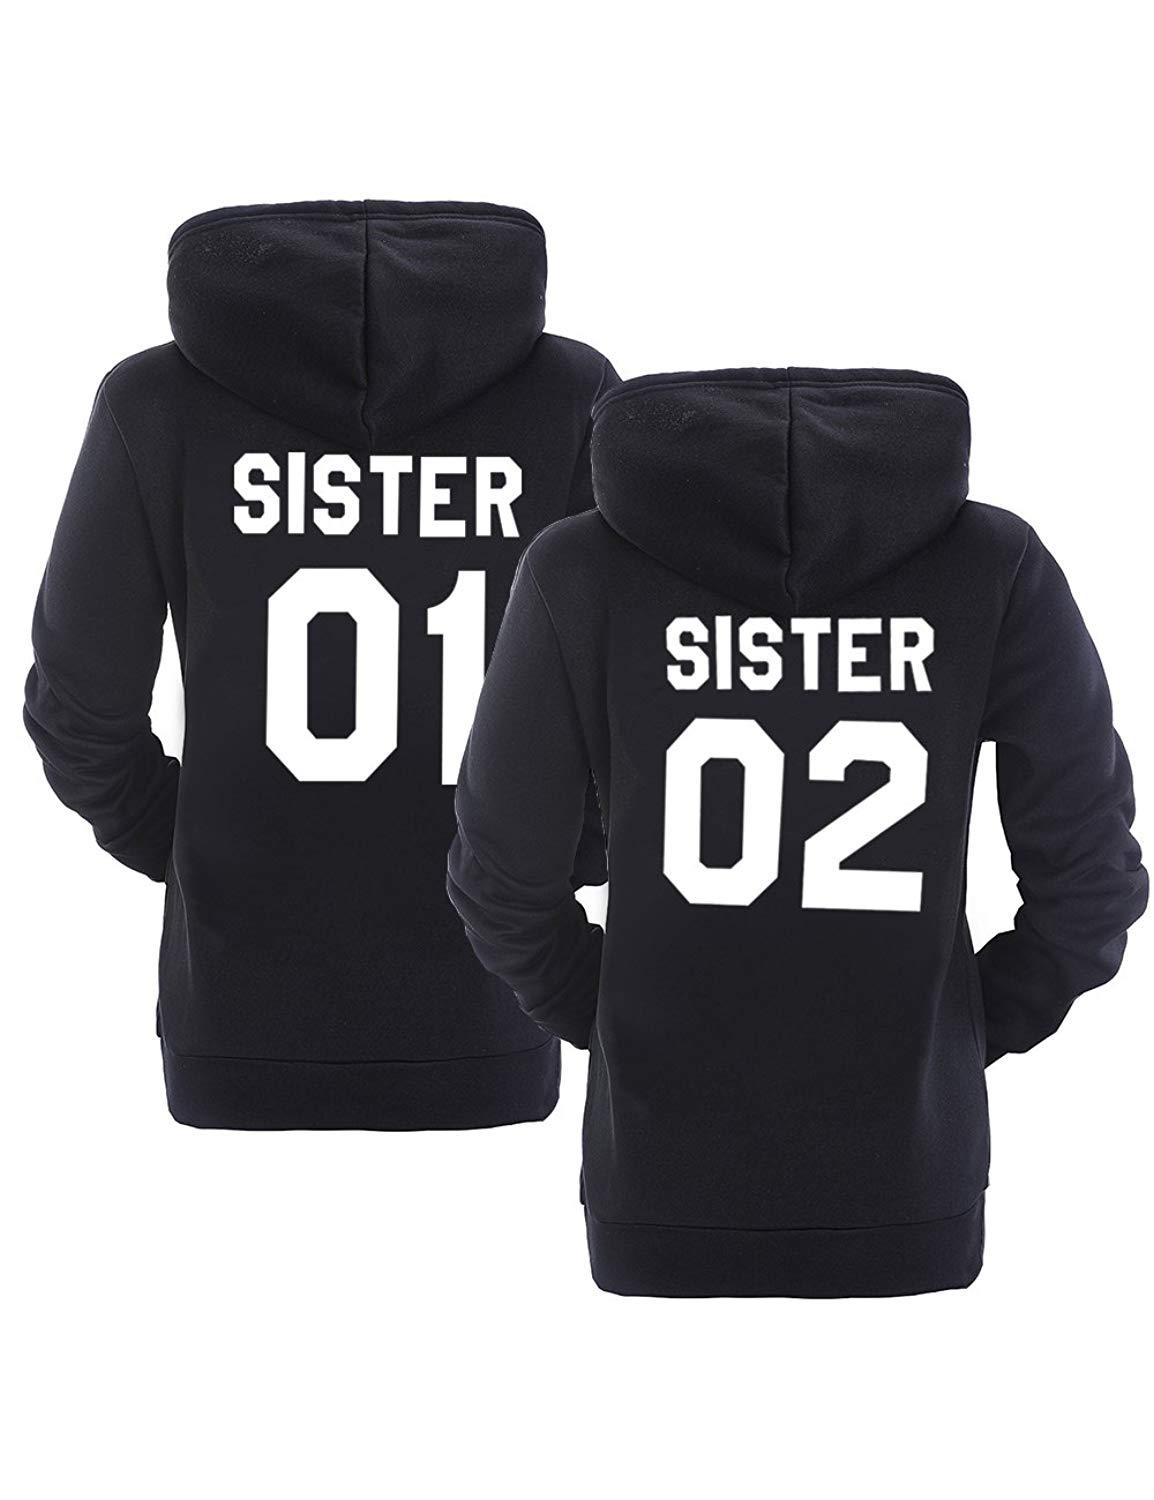 SISTER 01 SISTER 02 Sisters Jacket Cotton Terry Hooded Hoodie Big Size Sweatshirts